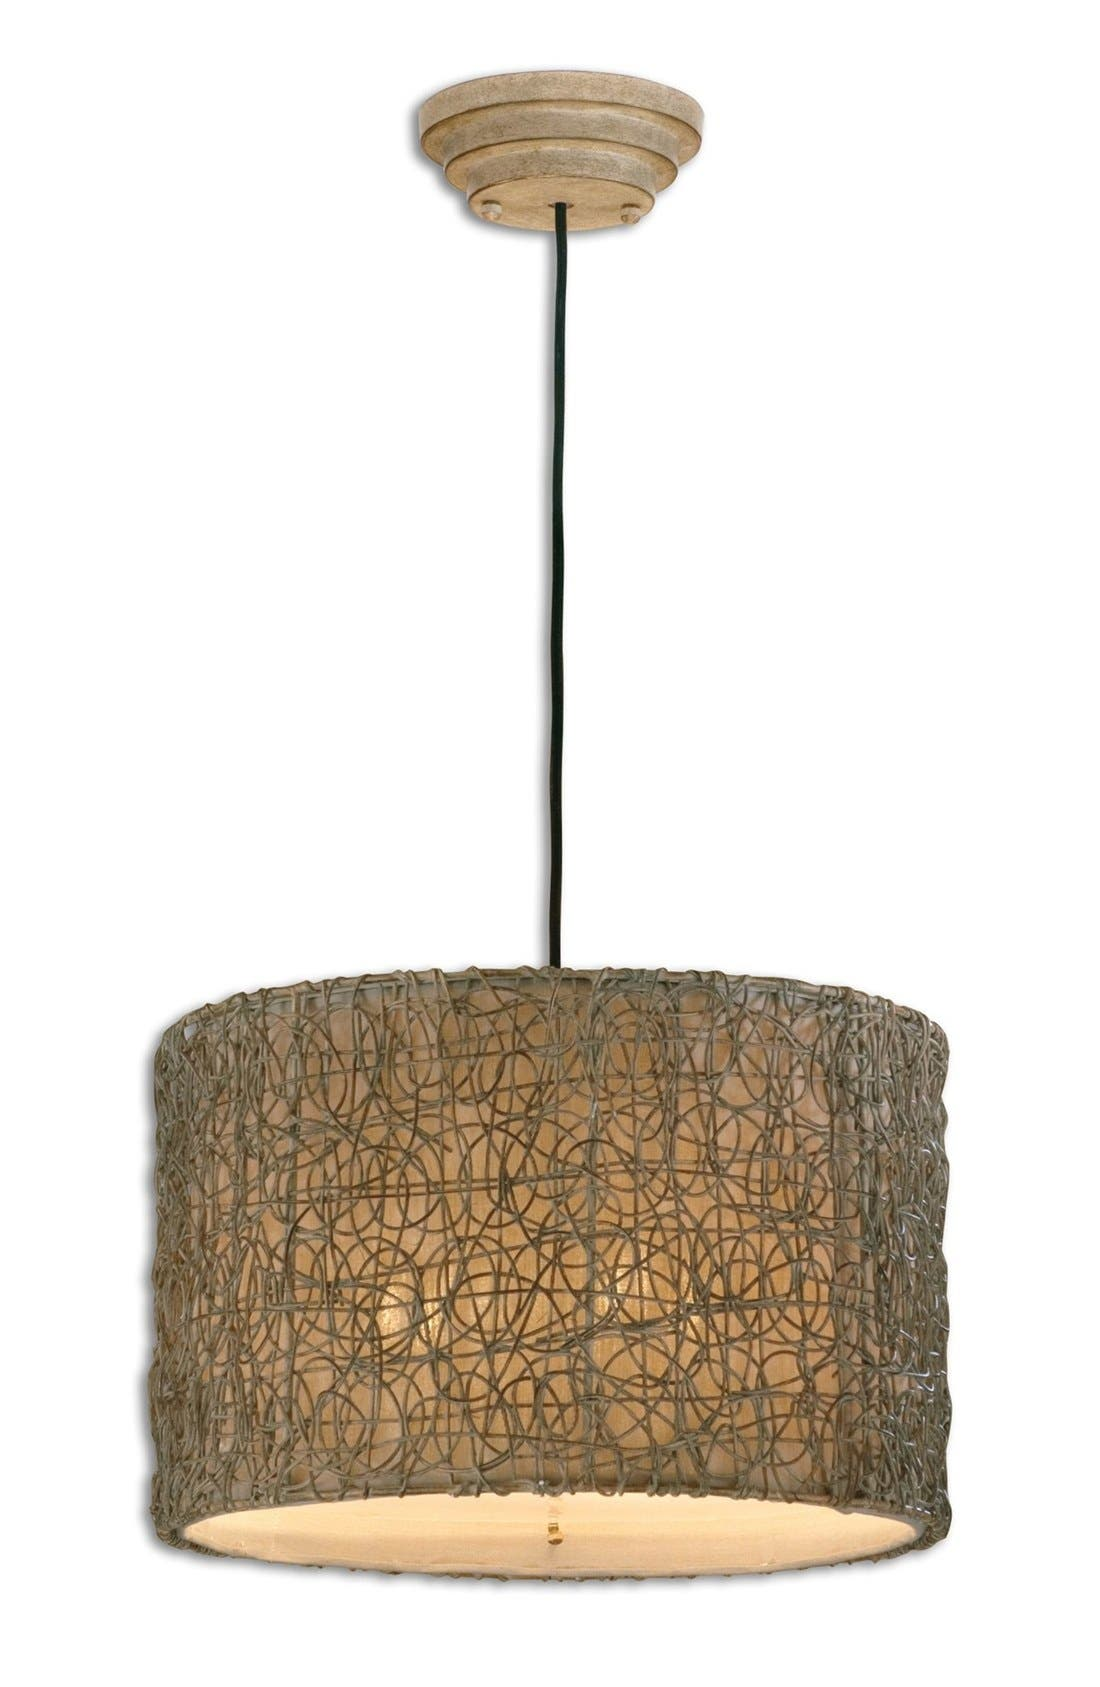 Alternate Image 1 Selected - Uttermost Knotted Rattan Pendant Light